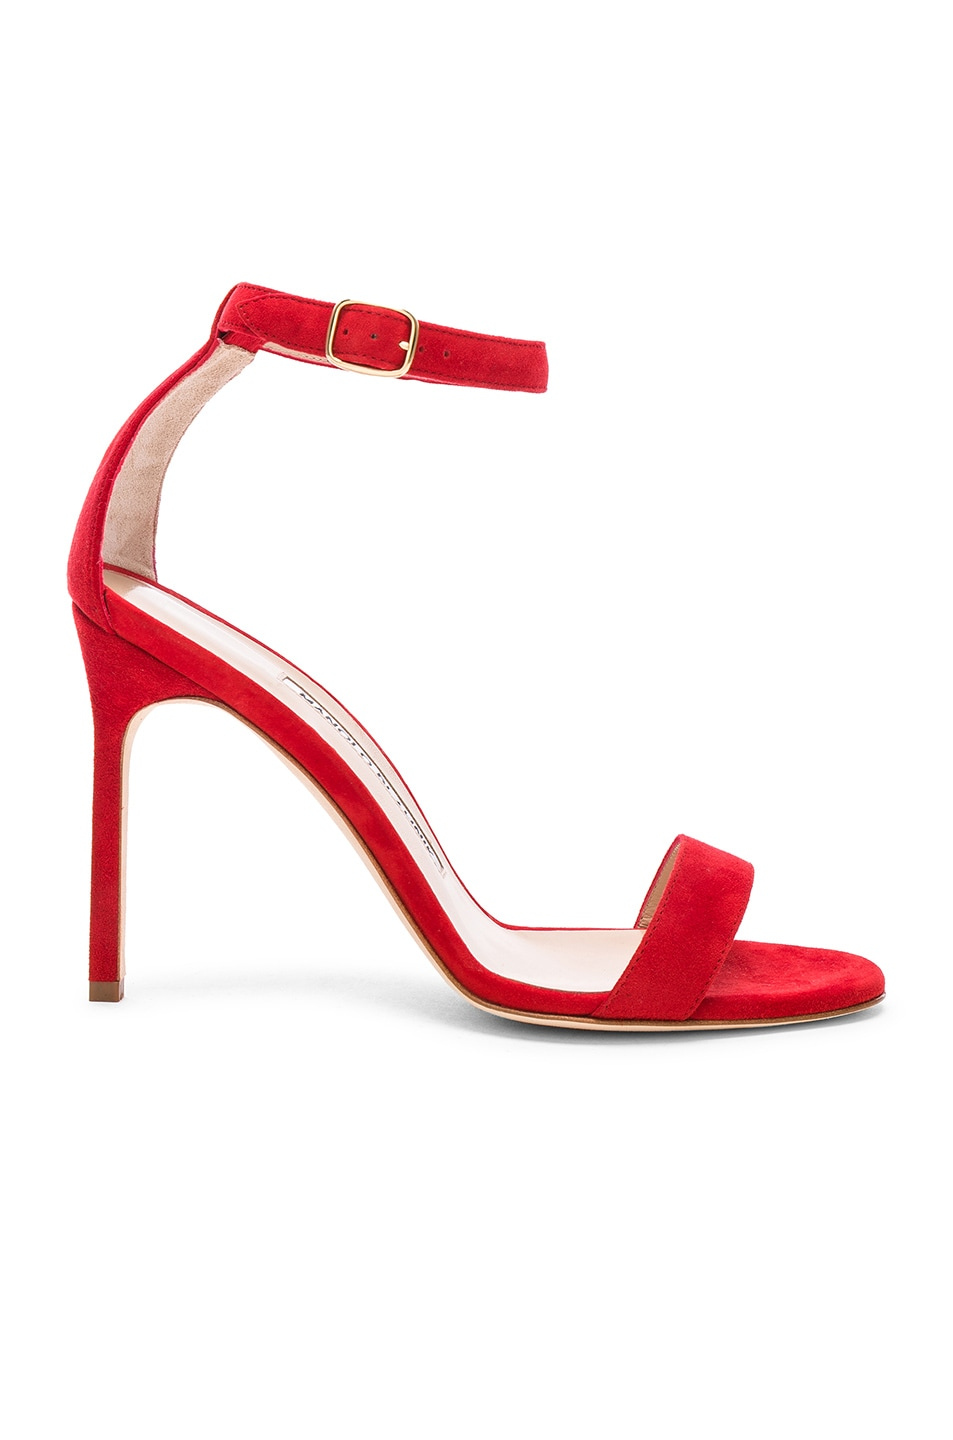 Image 1 of Manolo Blahnik Suede Chaos 105 Sandals in Red Suede